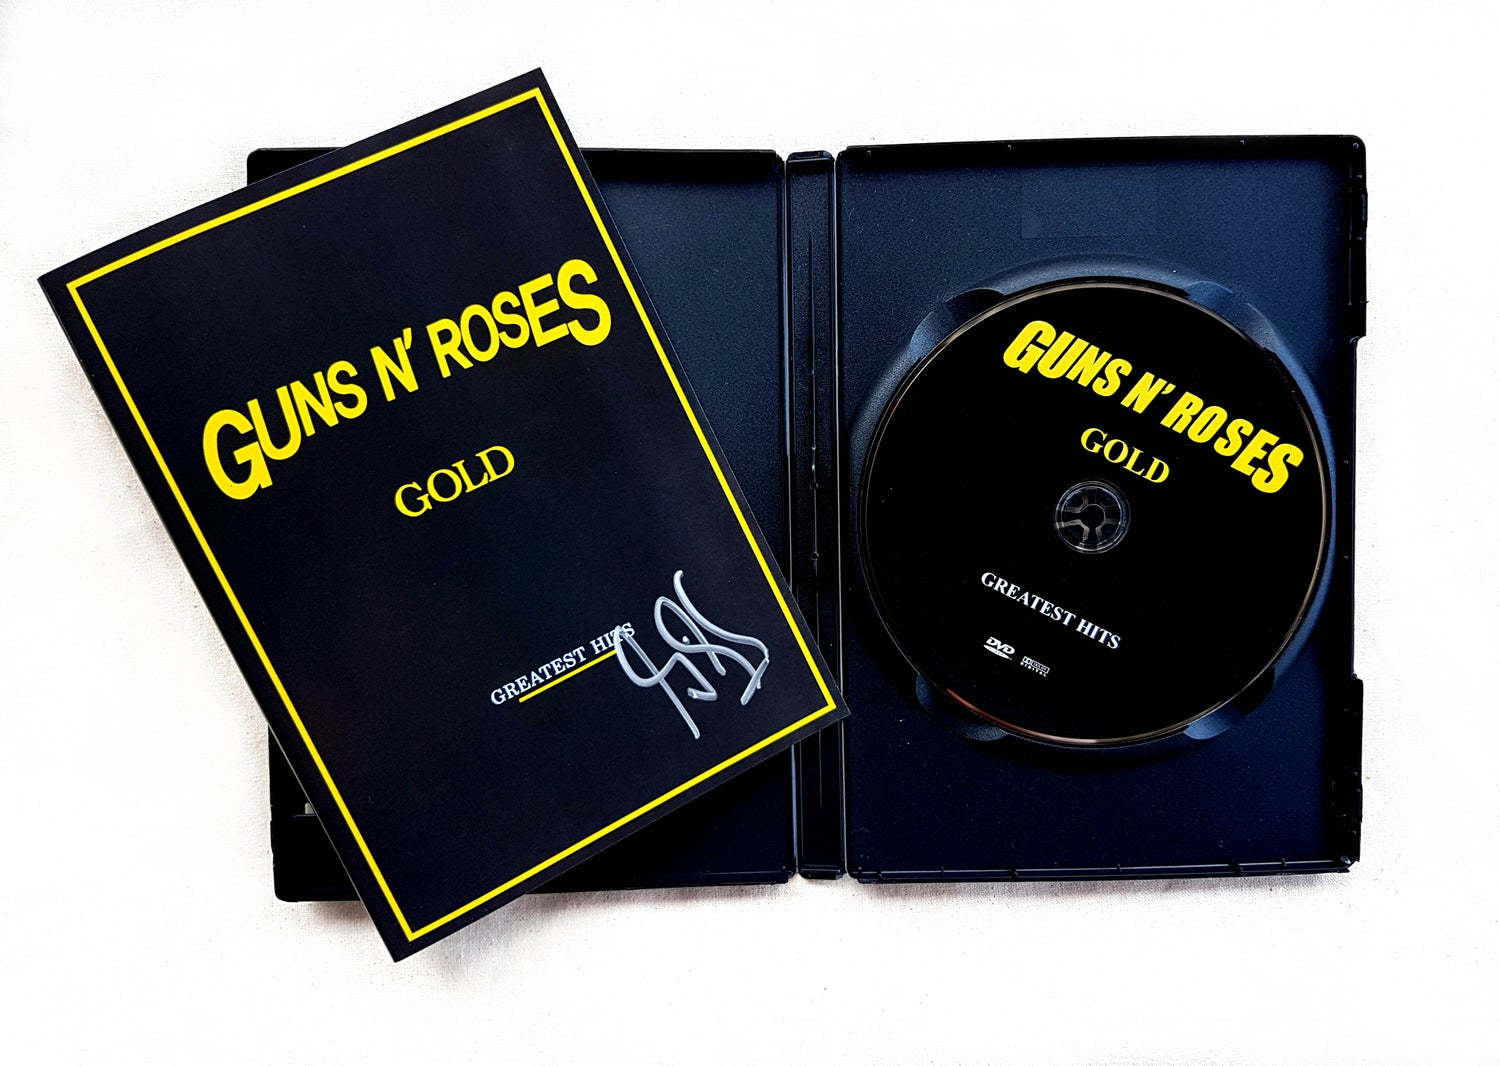 Image of DVD (SIGNED) - Guns N' Roses 'GOLD: Greatest Hits'